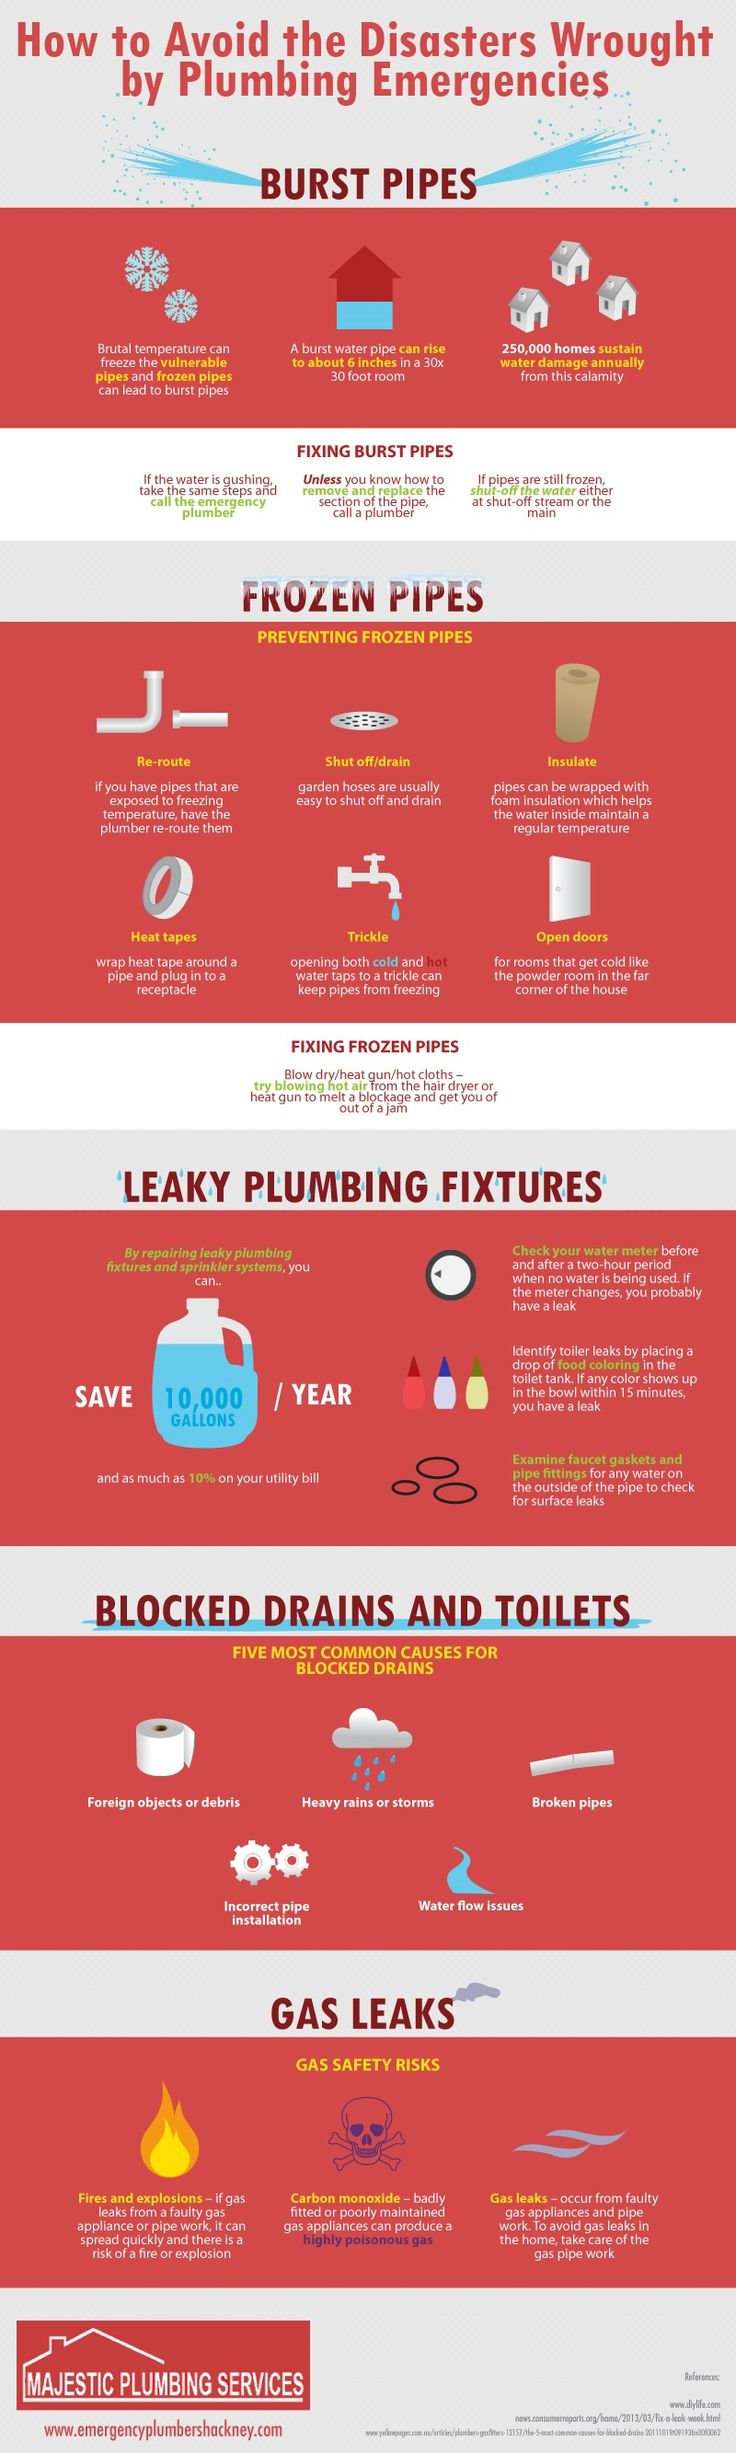 best plumbing images on pinterest cleaning home improvements